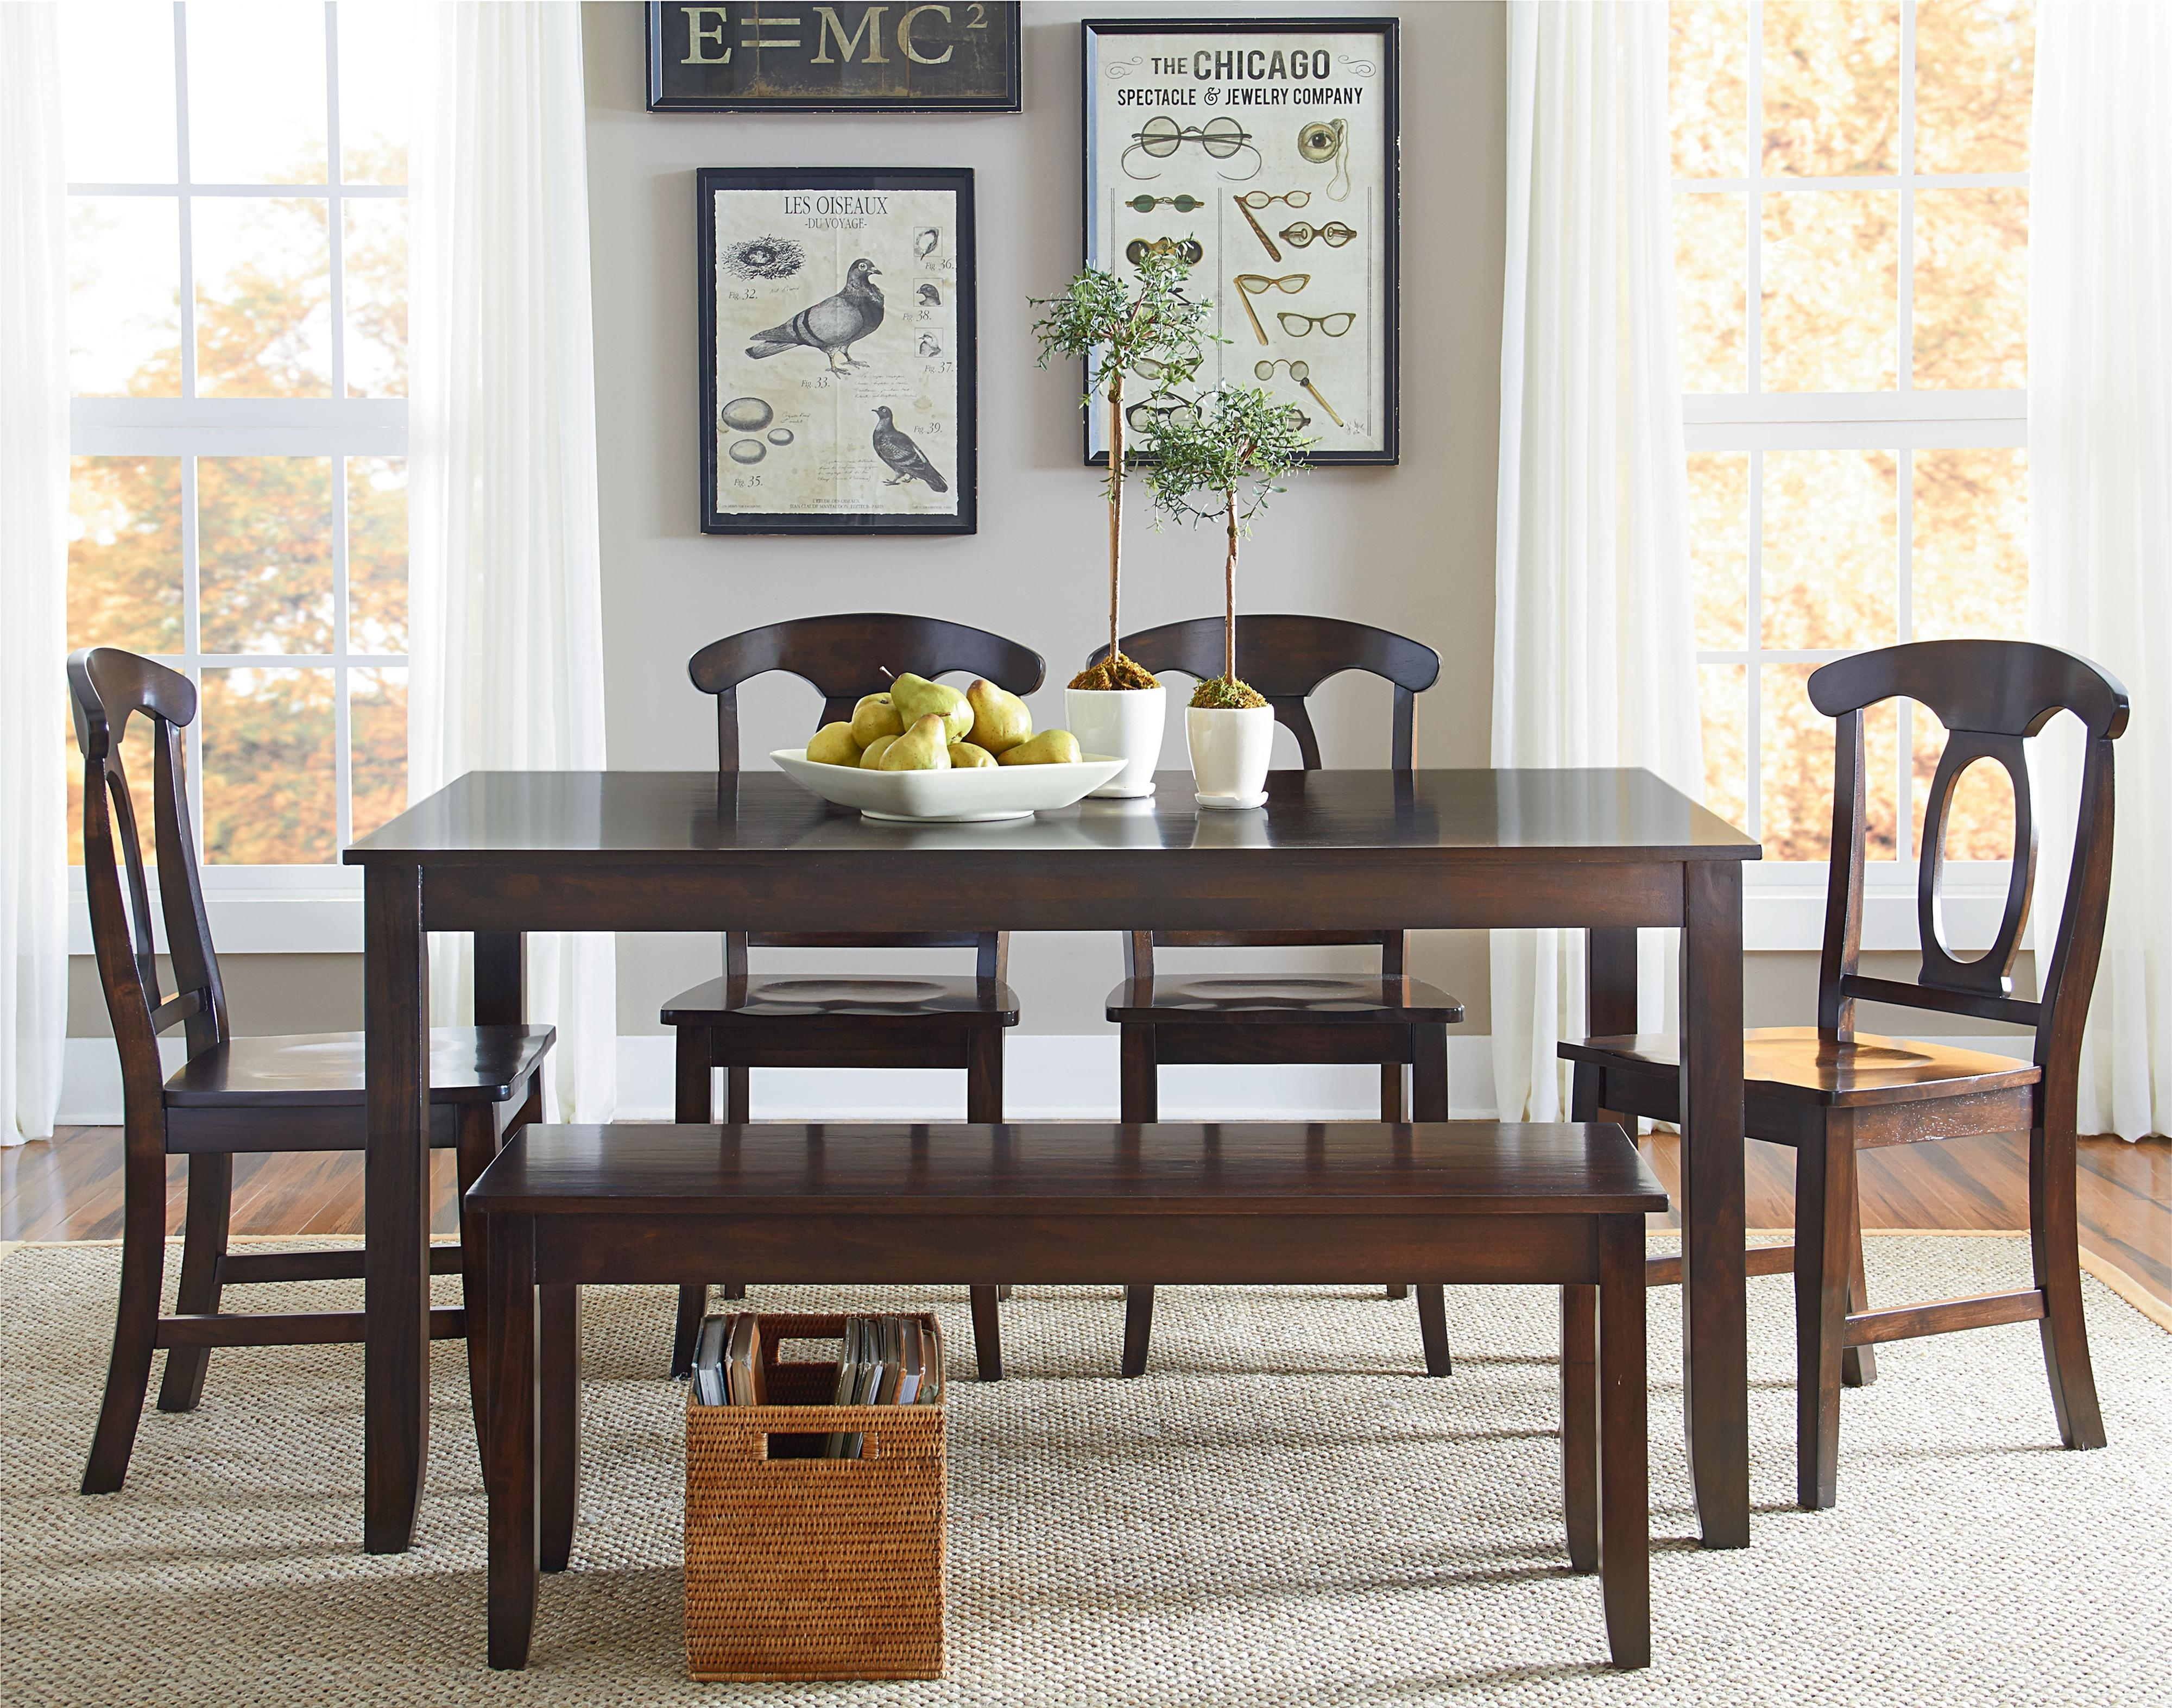 Standard Furniture Larkin 6 Piece Dining Table Set With Open Oval Inside Sofa Chairs With Dining Table (Image 10 of 10)